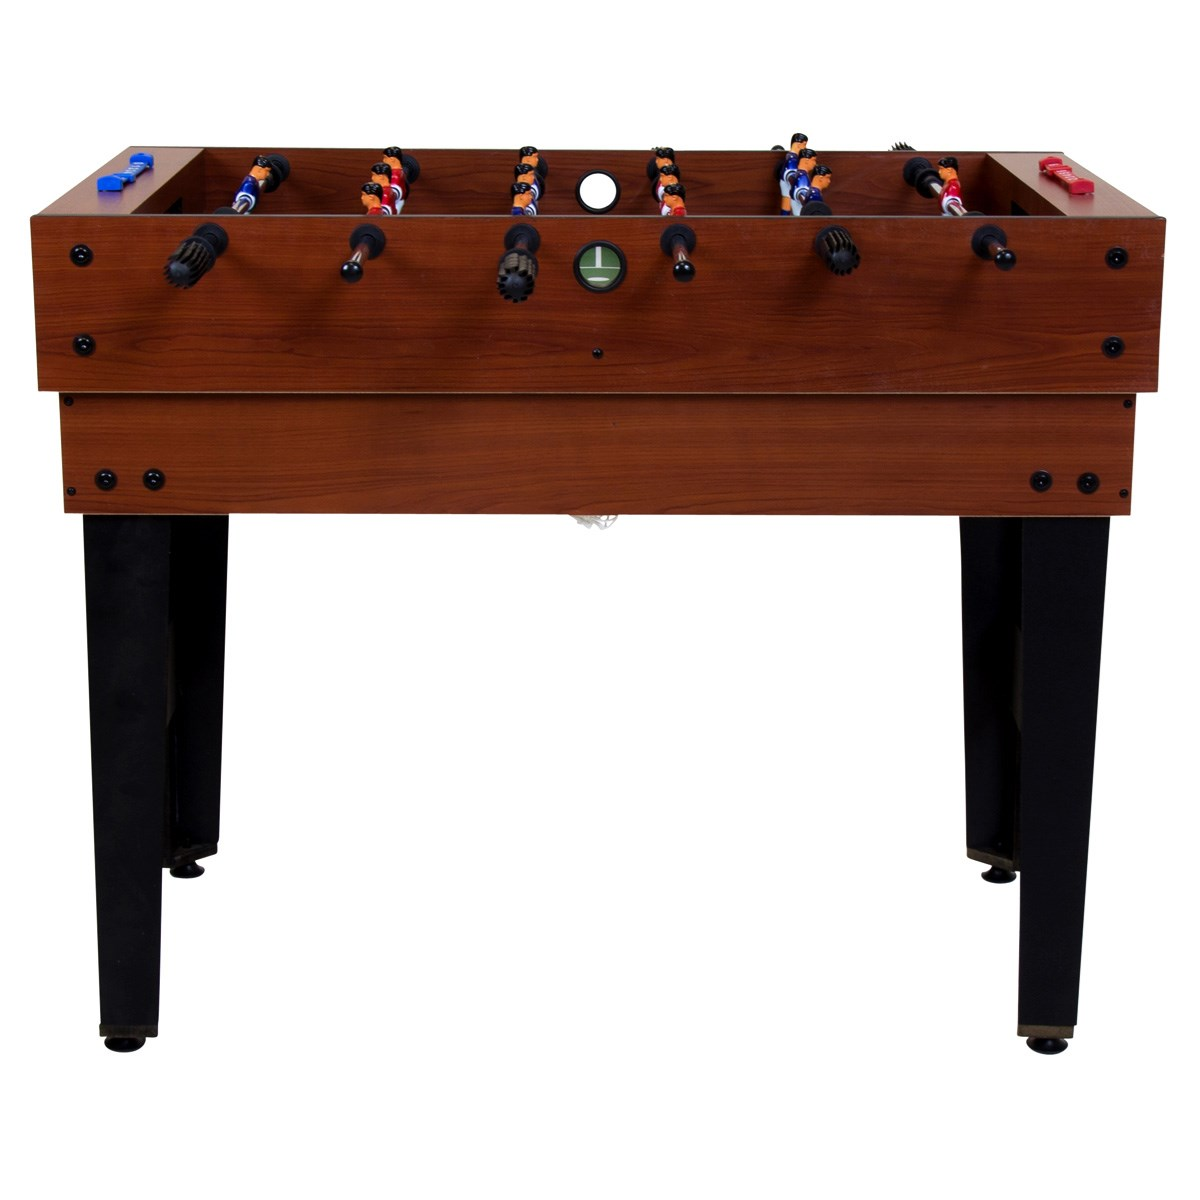 4 In 1 Games Table Pool Push Hockey Table Tennis And Football